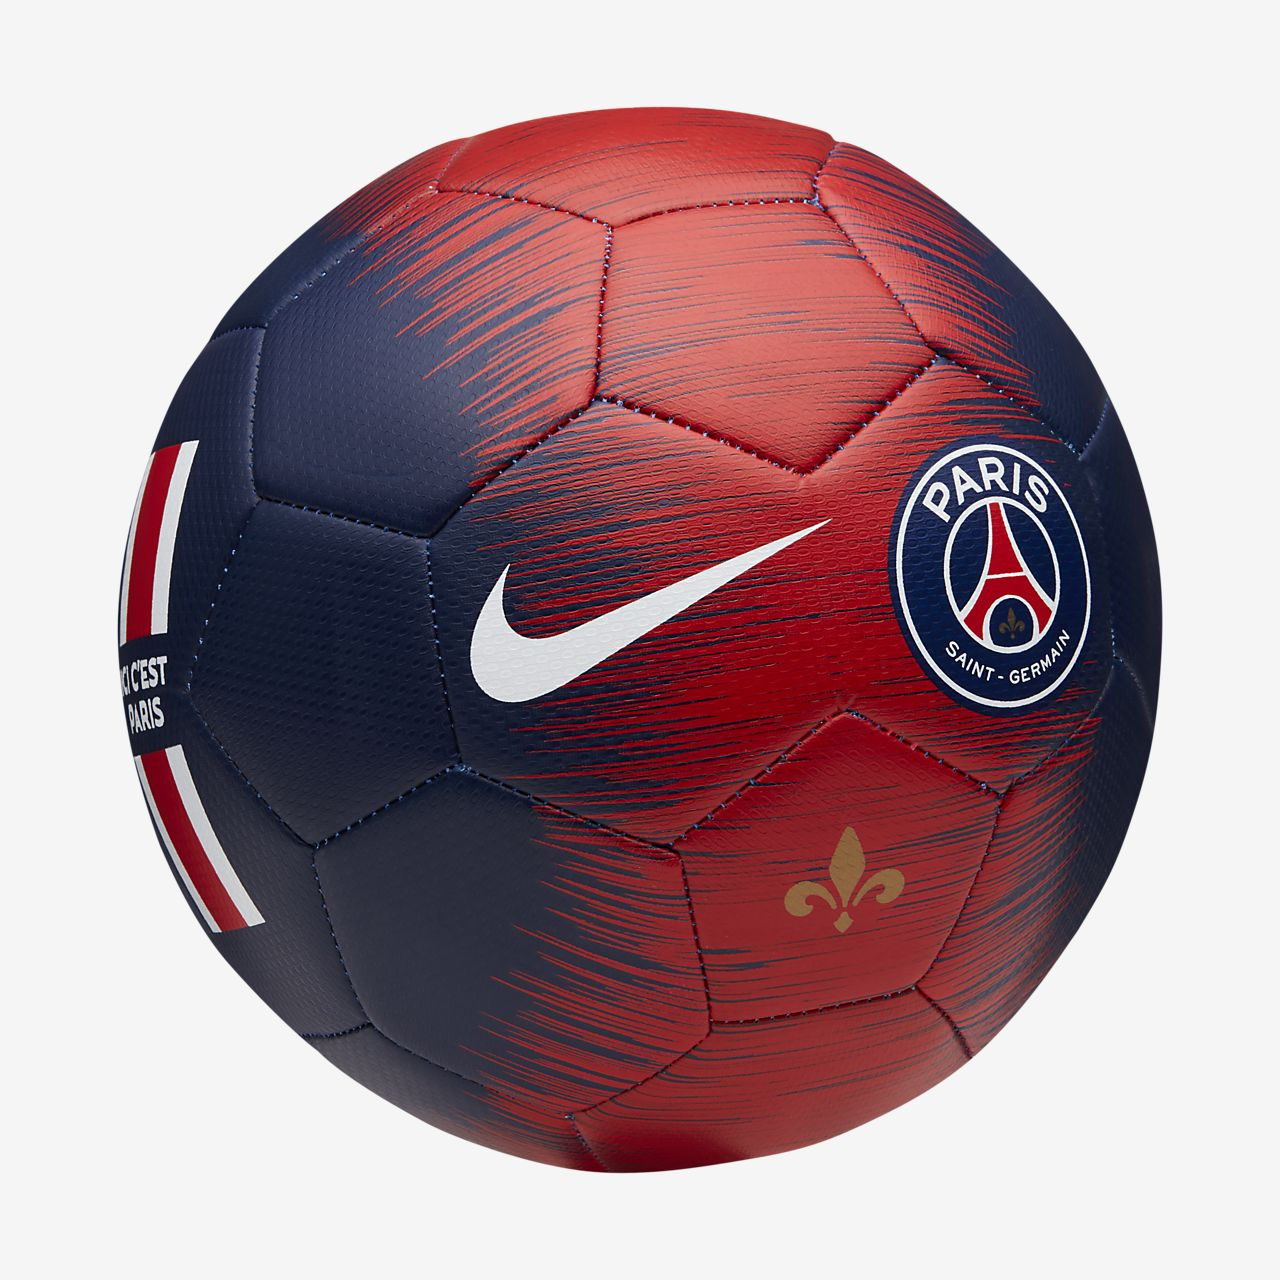 Paris Saint-Germain Prestige Football